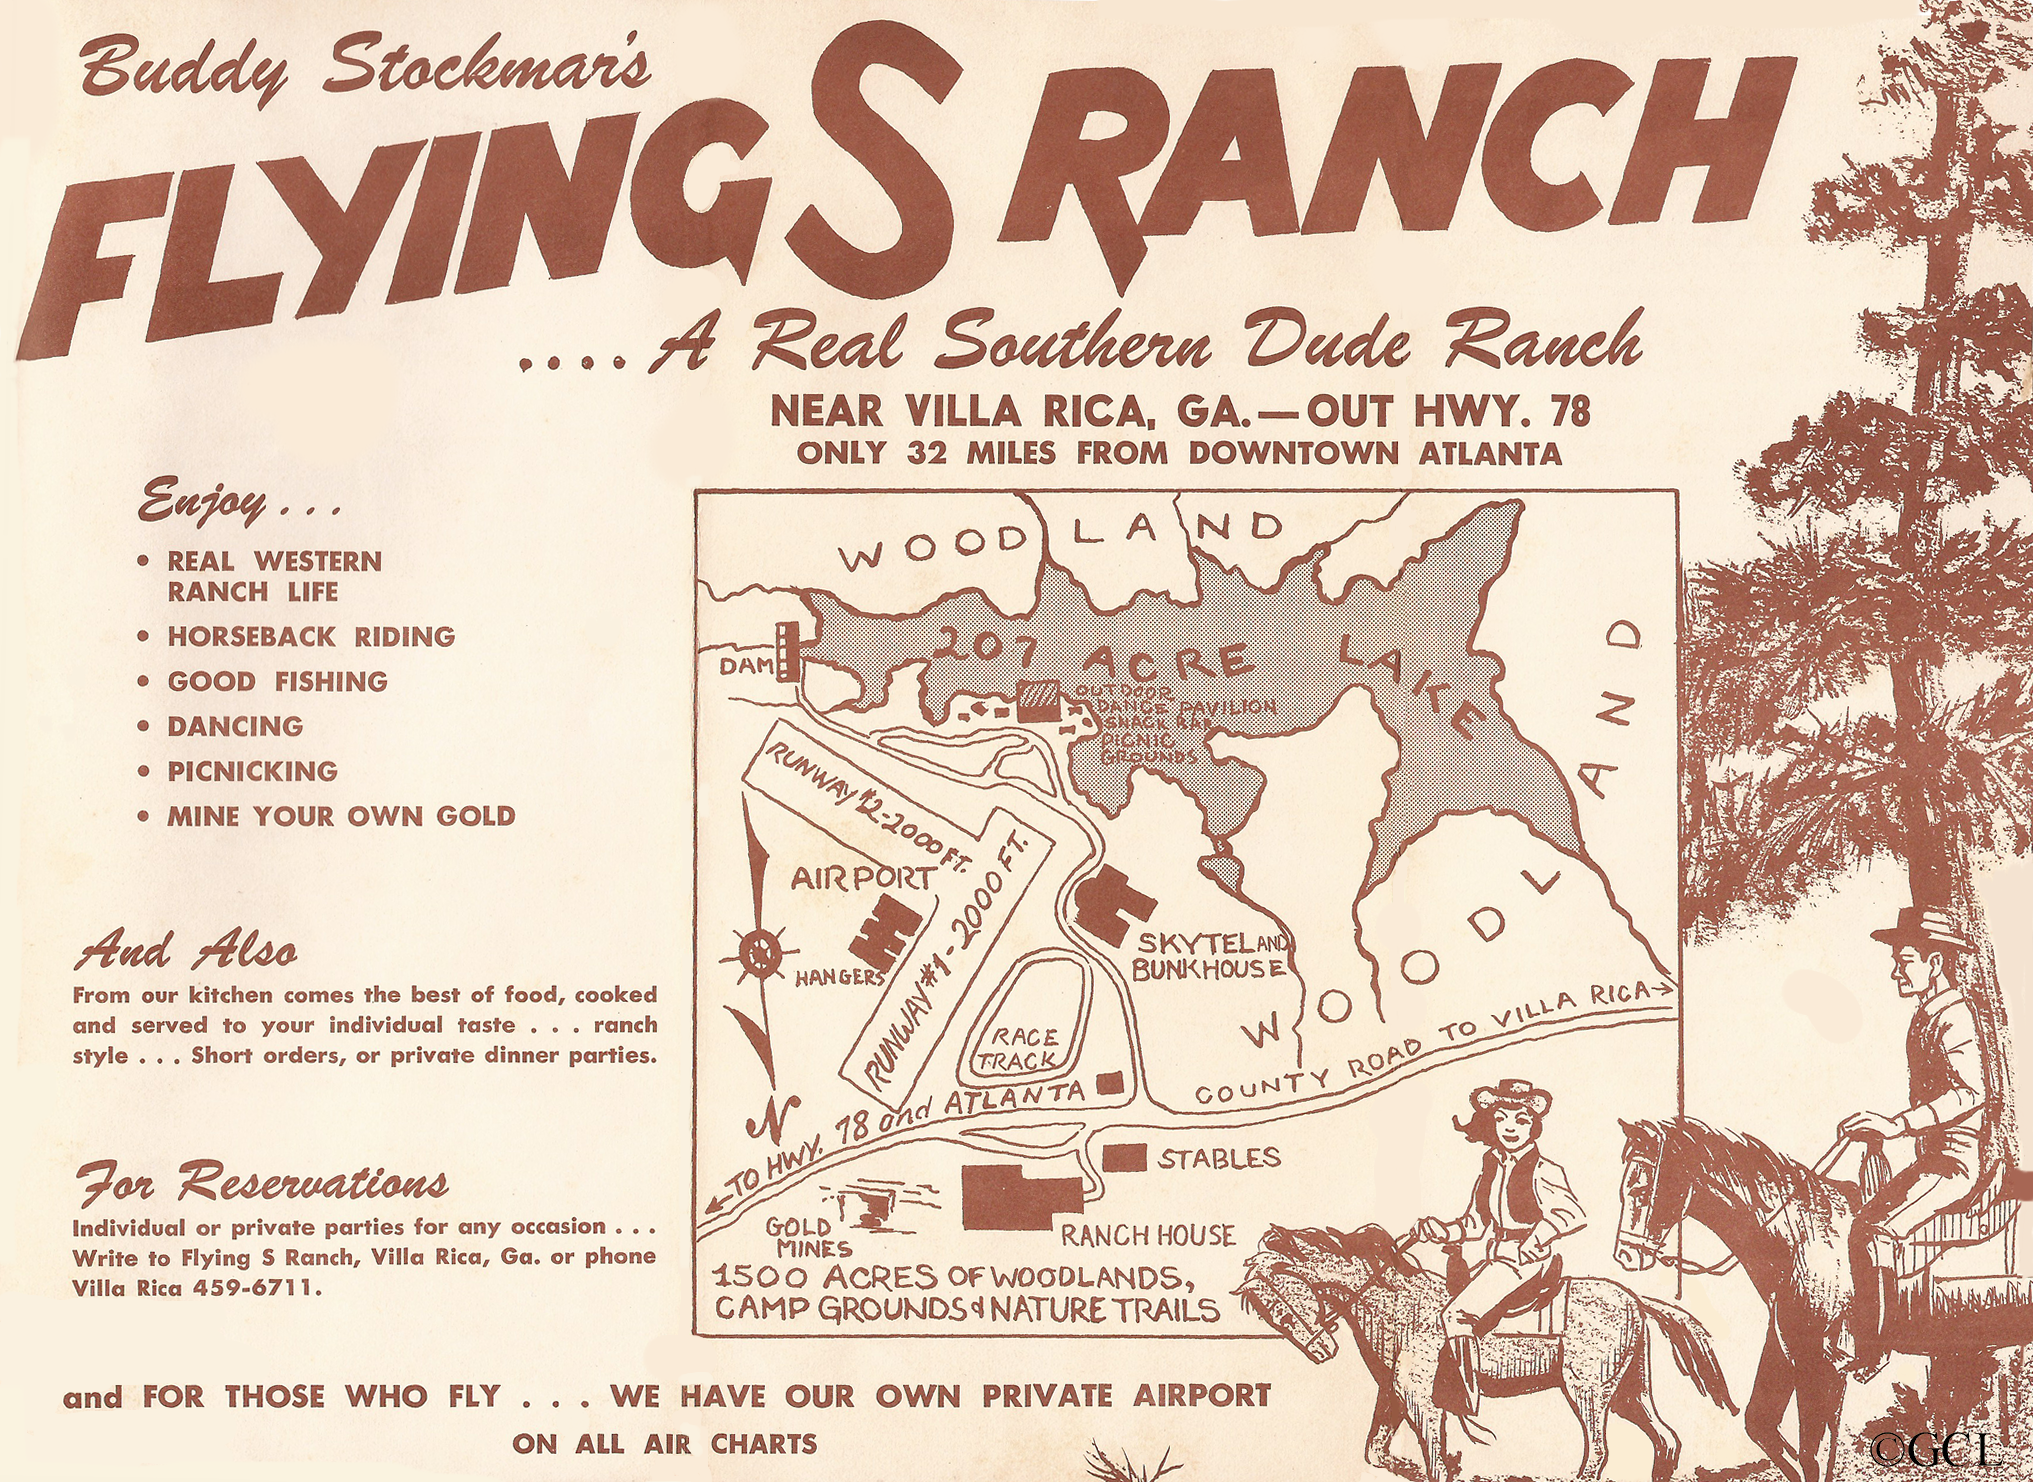 Flying S Ranch & Stockmar Gold Mine